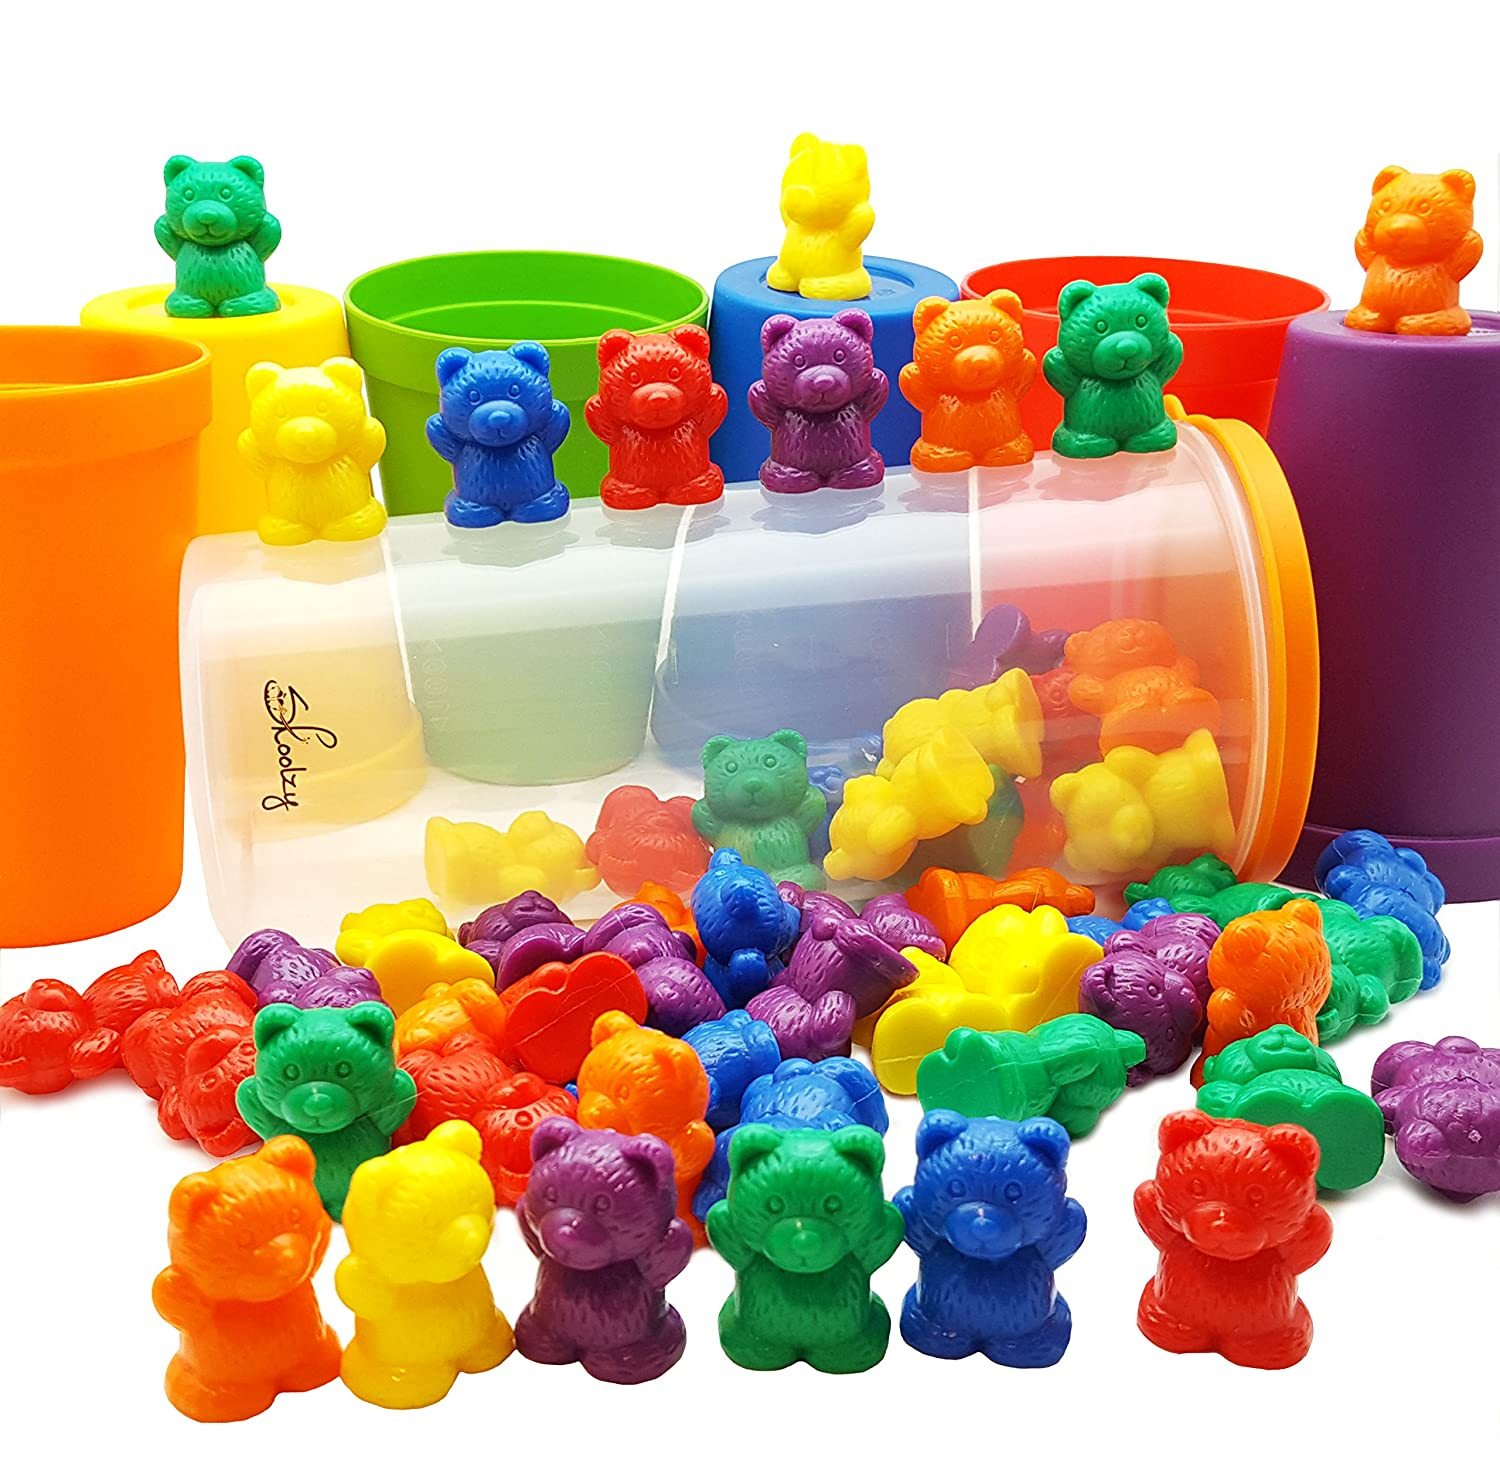 60 Rainbow Counting Bears with Color Matching Sorting Cups Set by